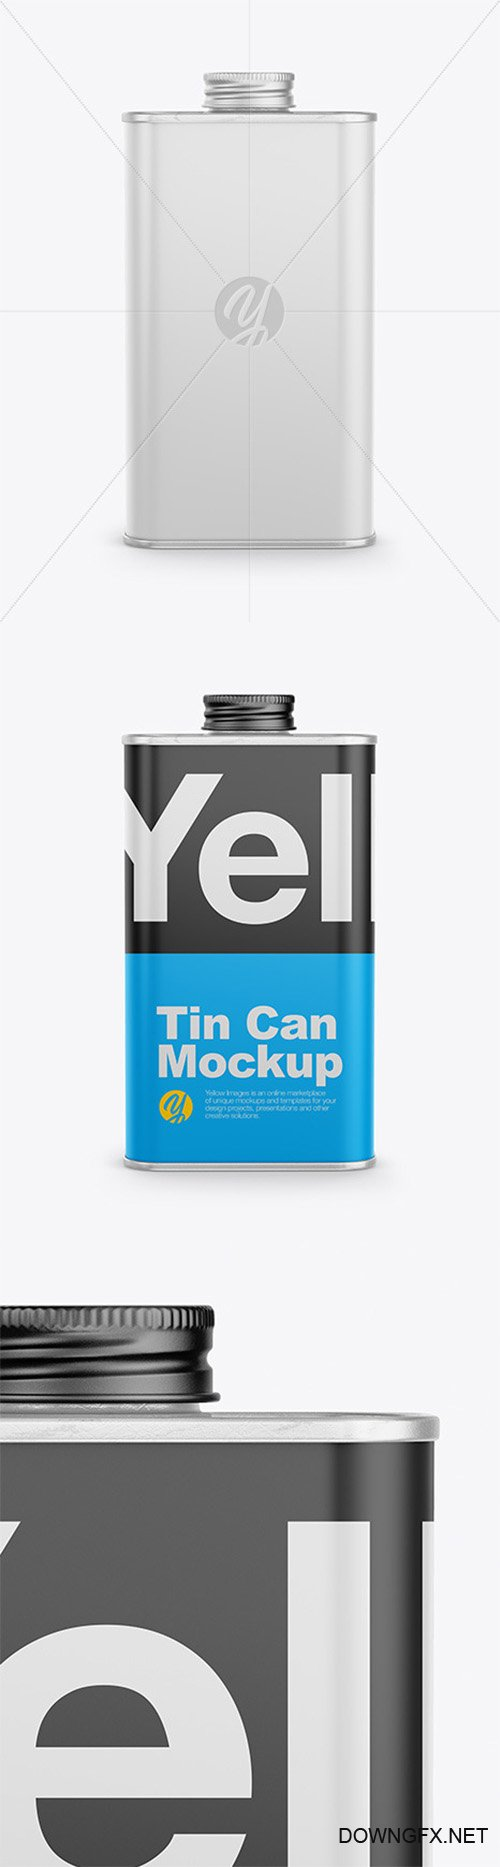 Glossy Tin Can Mockup 64891